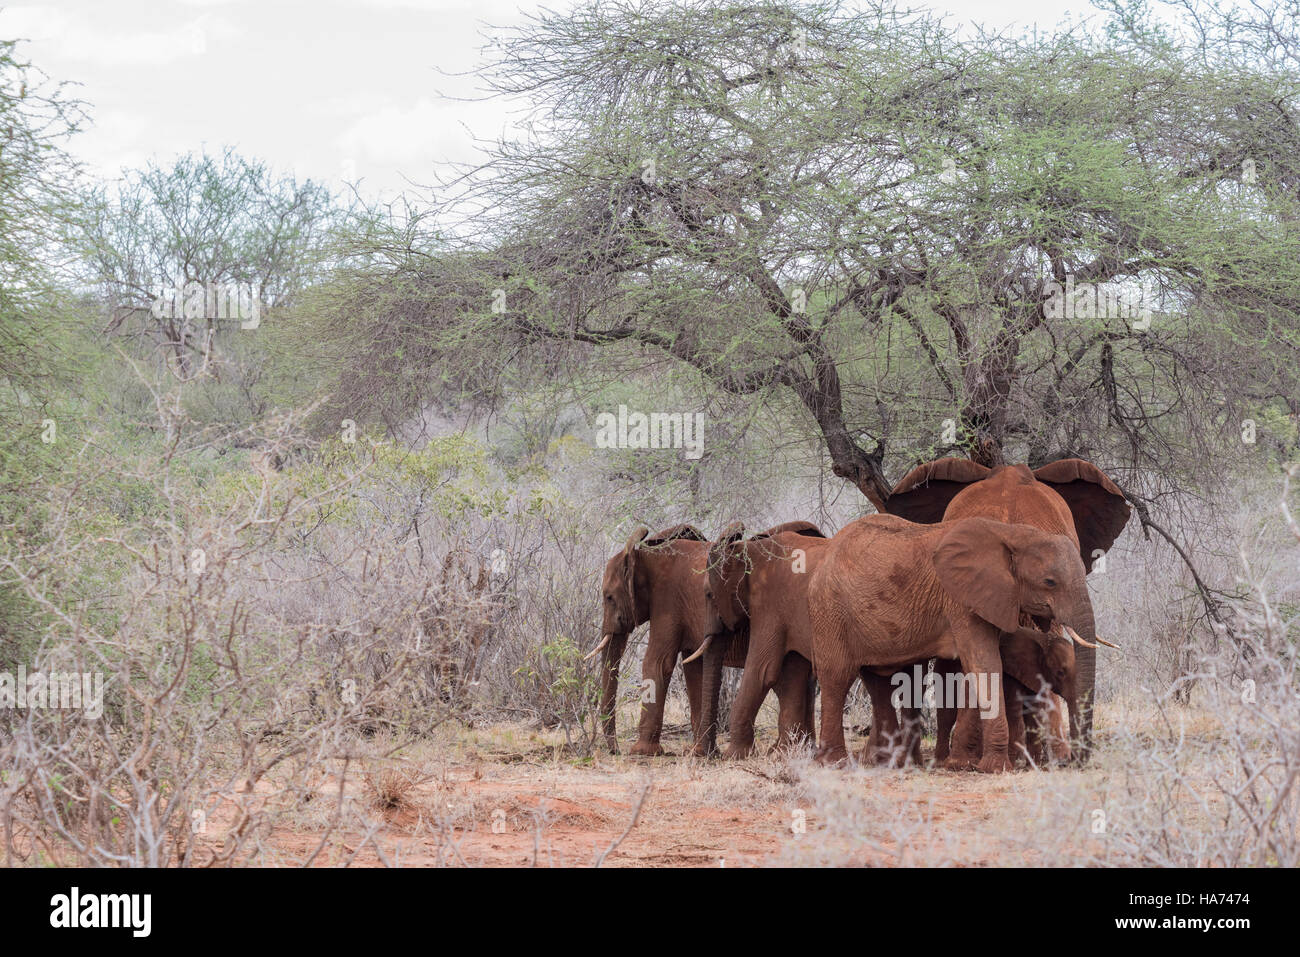 A family group of 'red' elephants sheltering under an Acacia tree - Stock Image